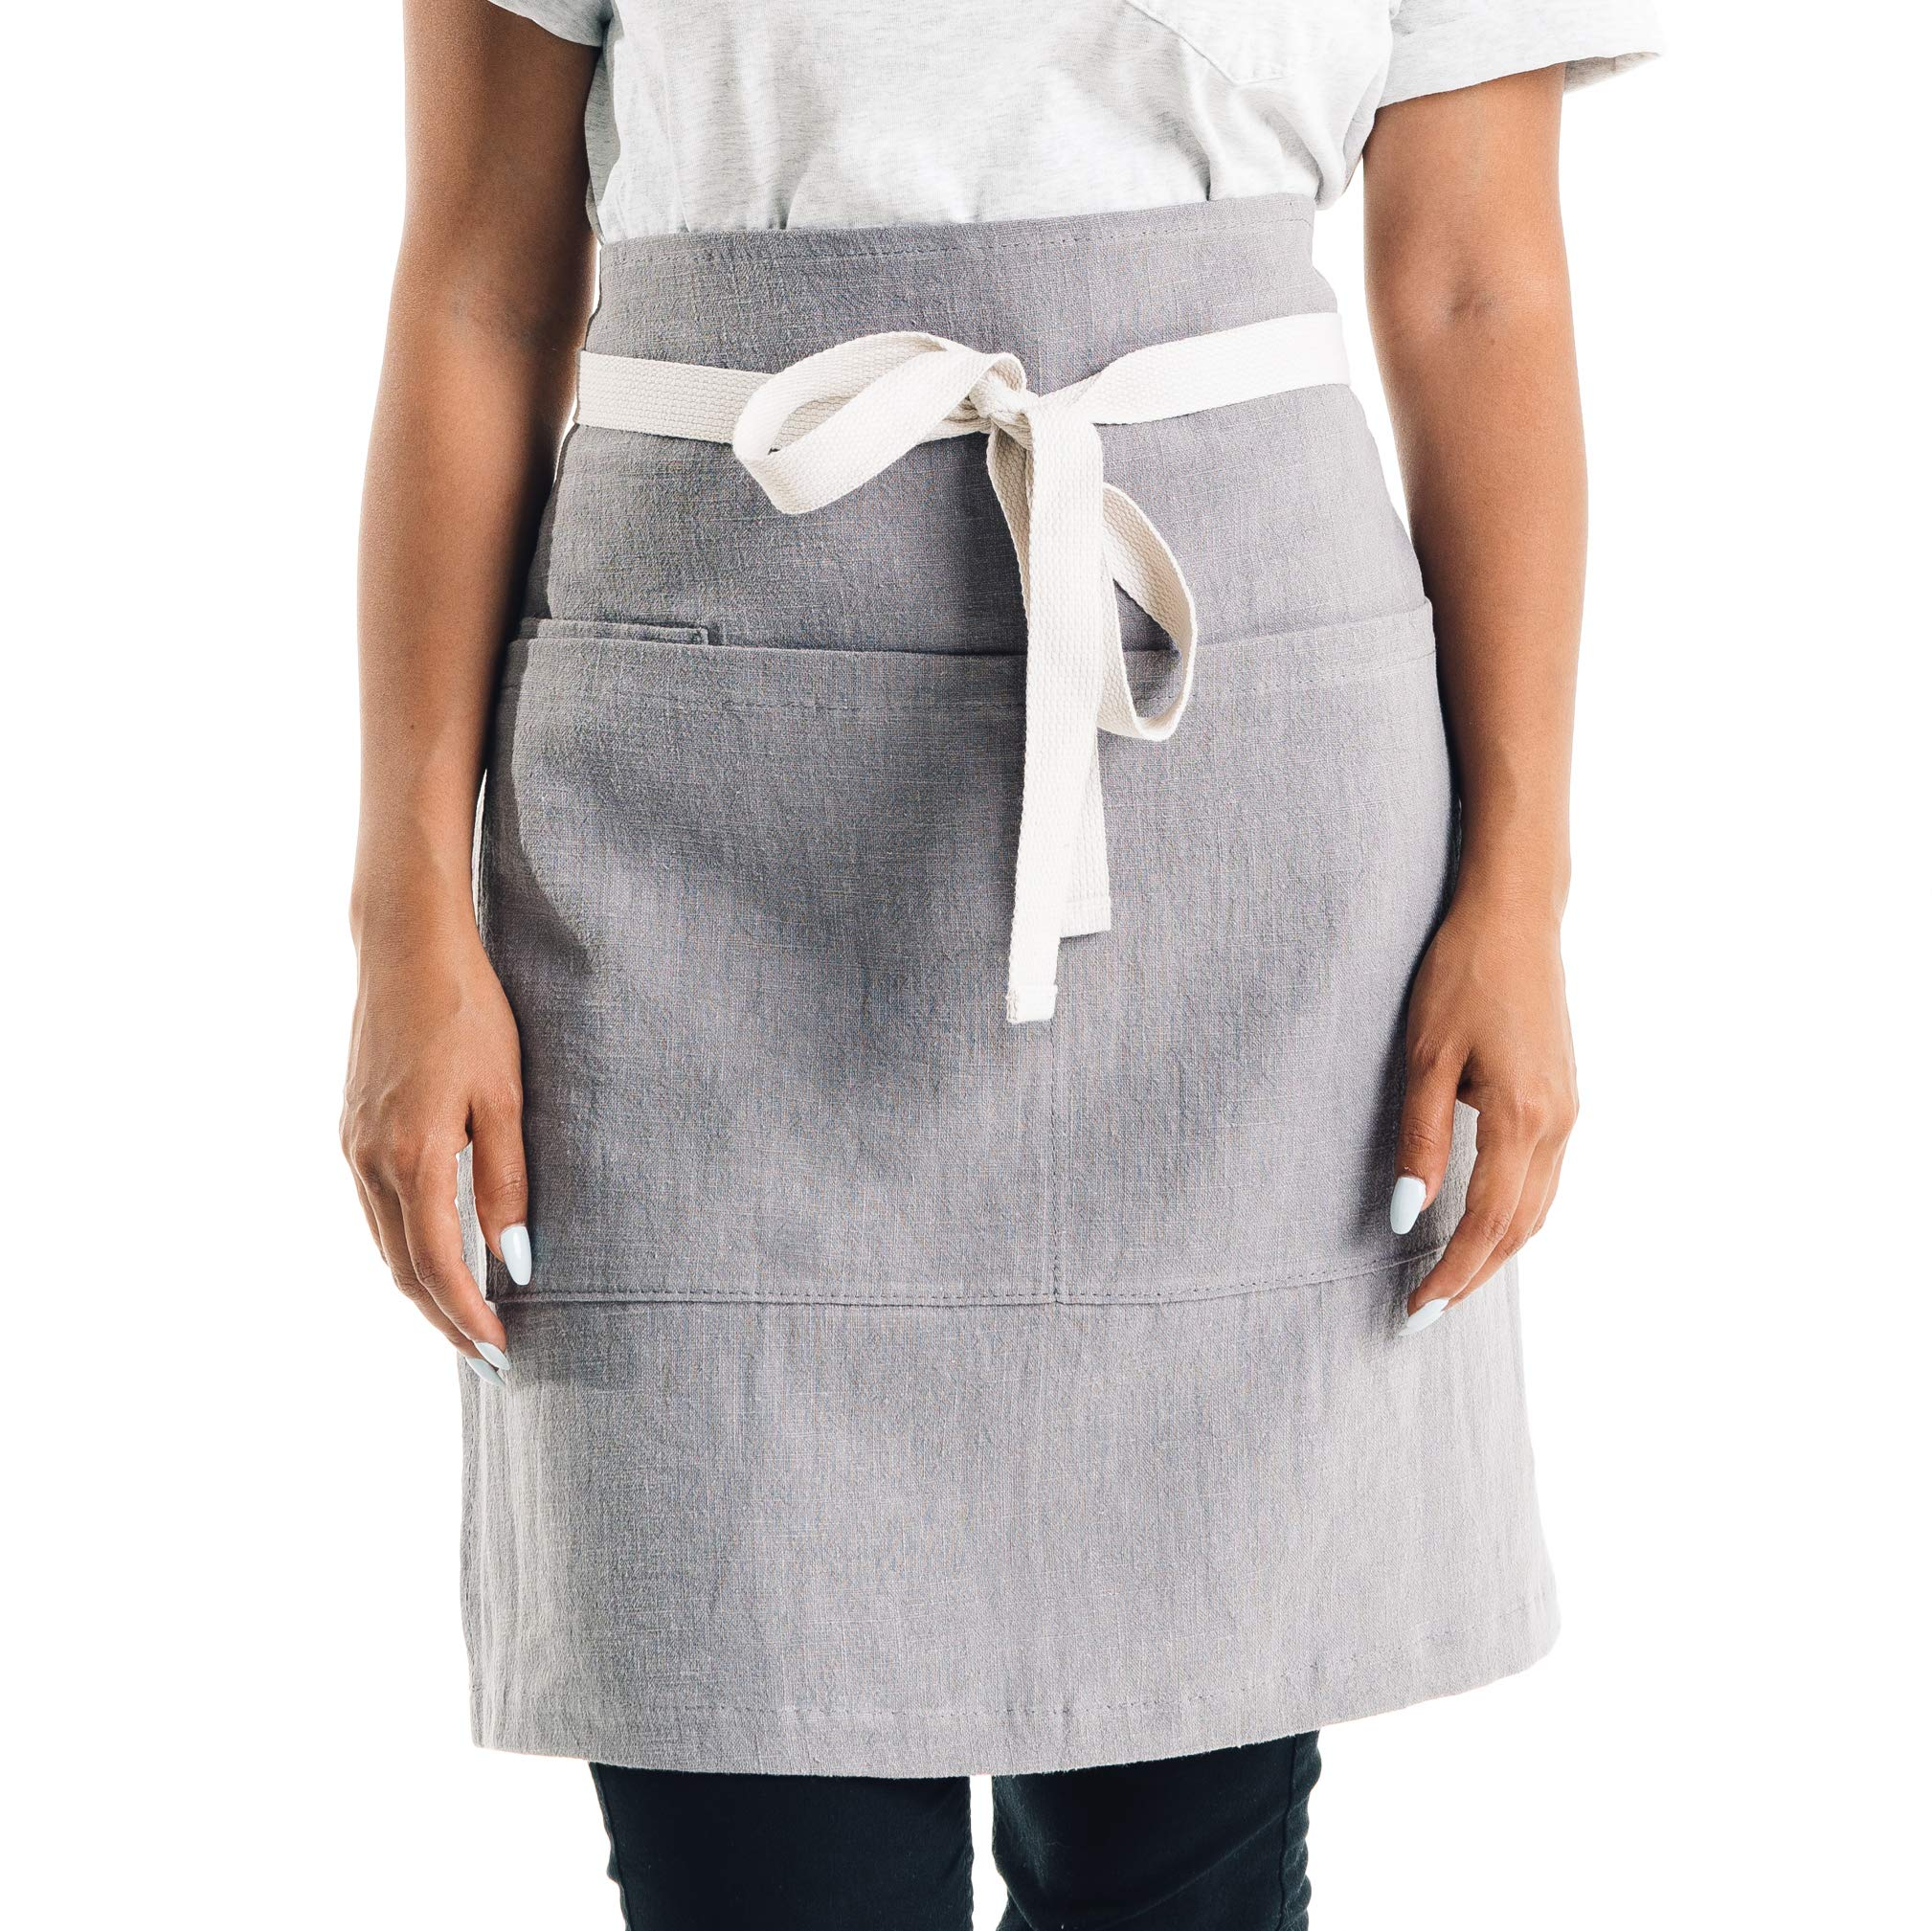 CALDO Linen Bistro Cafe Apron - Professional Grade with 3 Pockets, Mid Length 23 x 23, 40 Inch Waist Ties - Durable Unisex Uniform (Grey) by Caldo